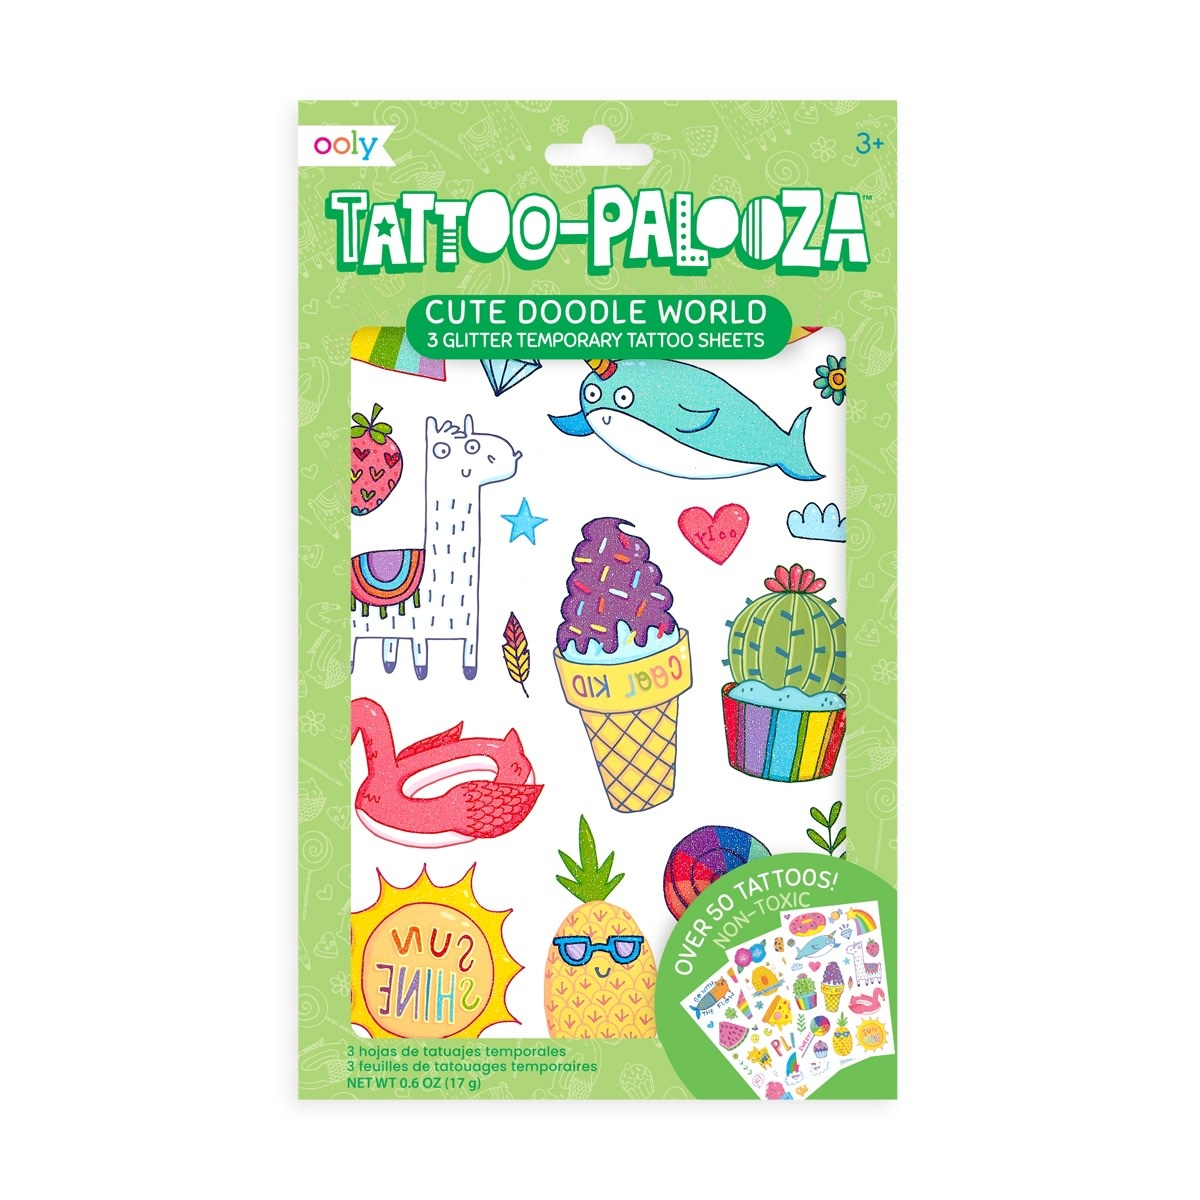 Ooly Tattoo Palooza Temporary Tattoo: Cute Doodle World